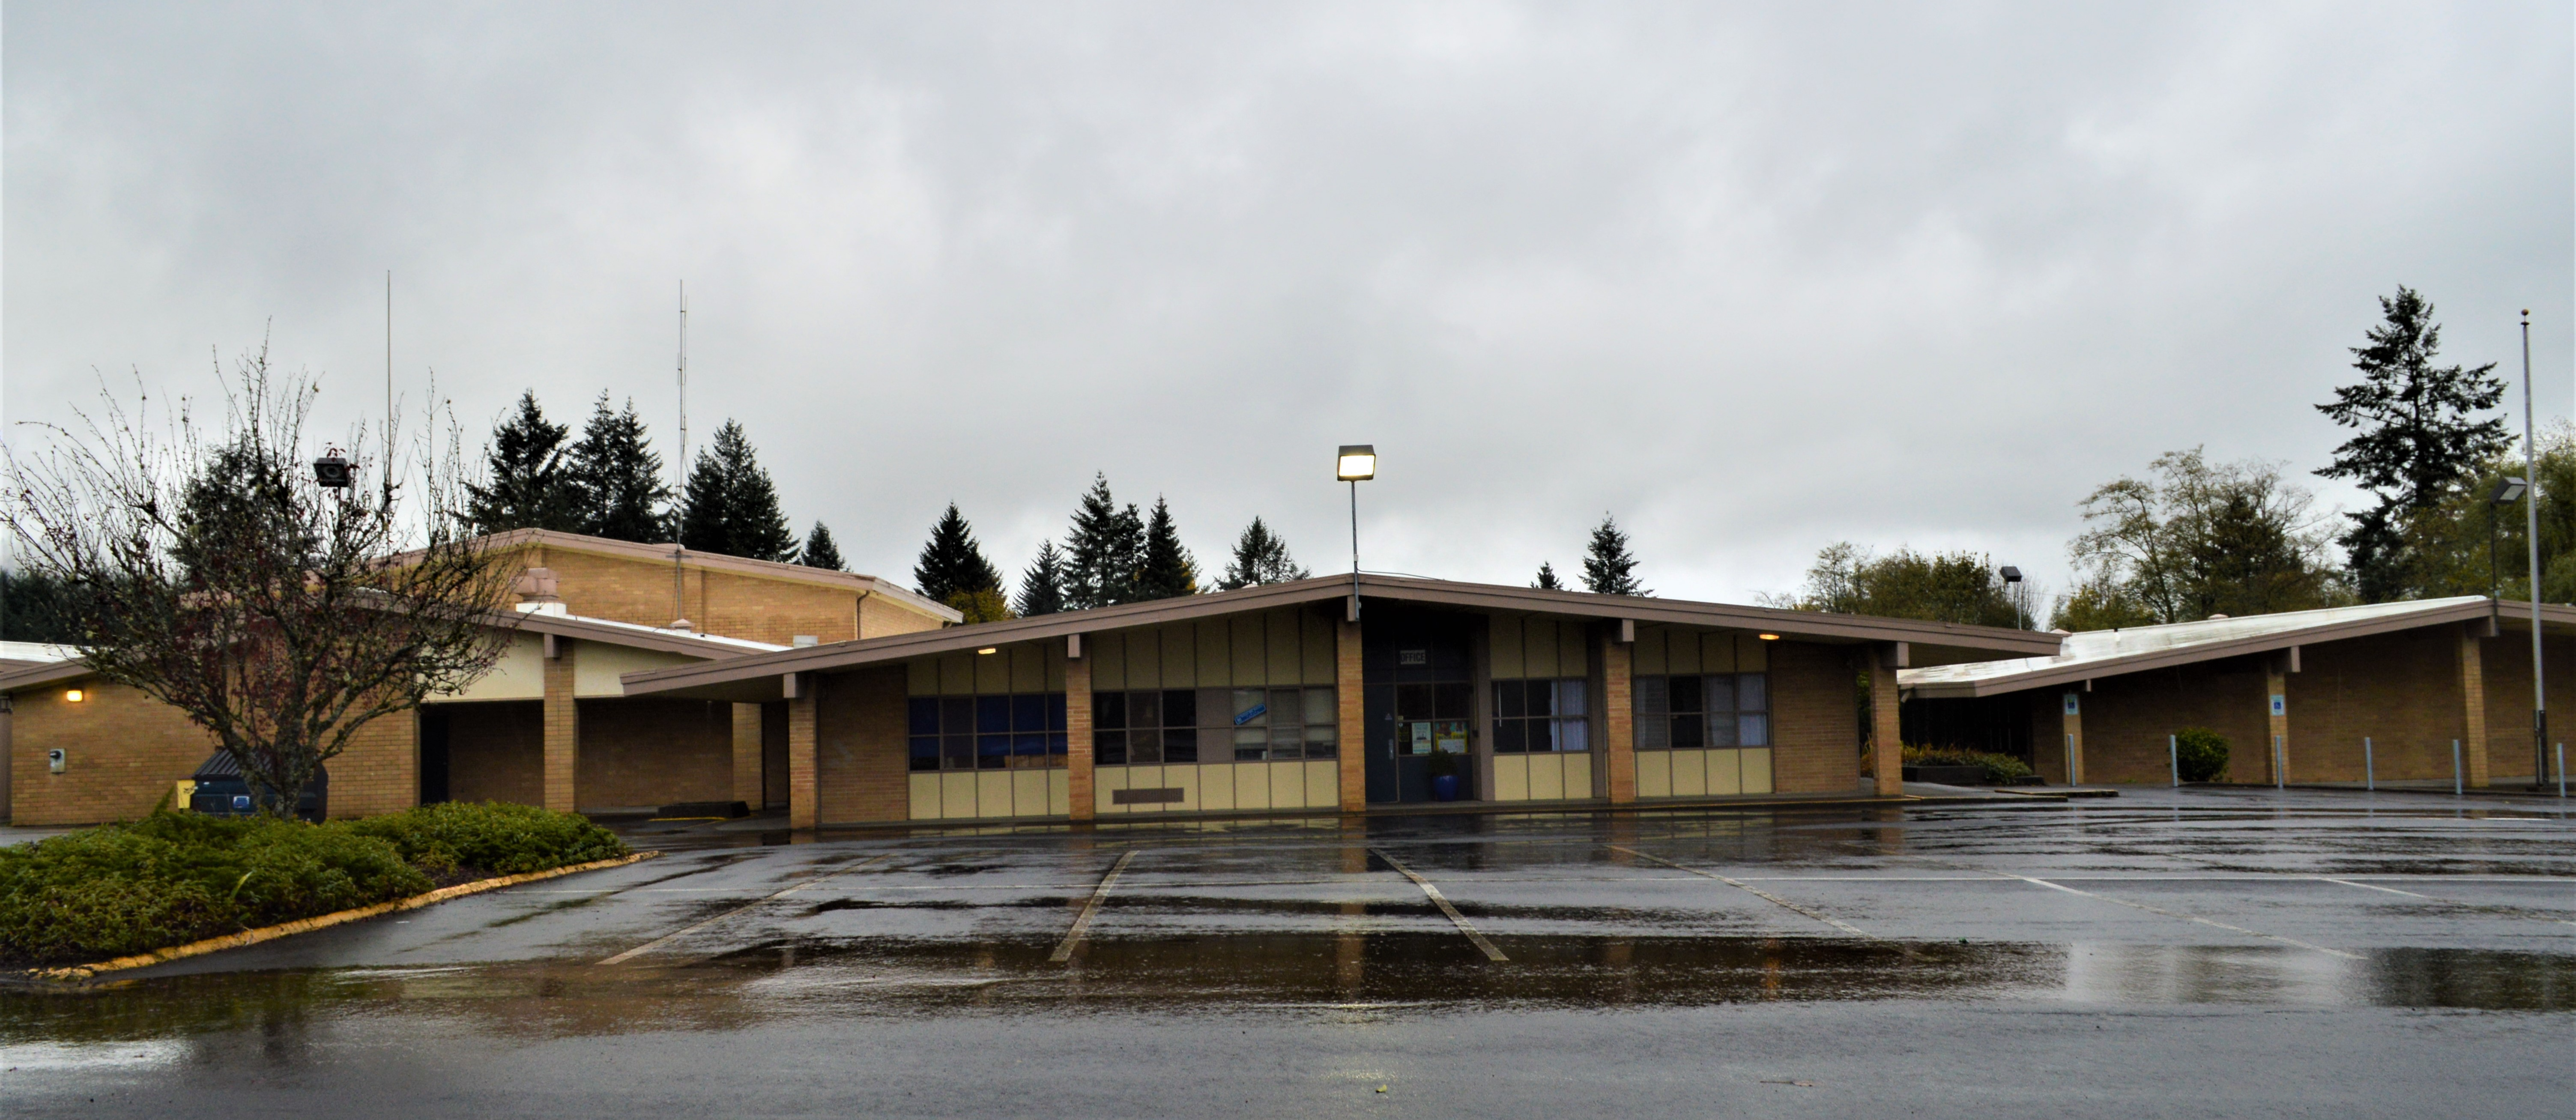 Beacon Hill Elementary has closed its doors and moved to Lexington Elementary